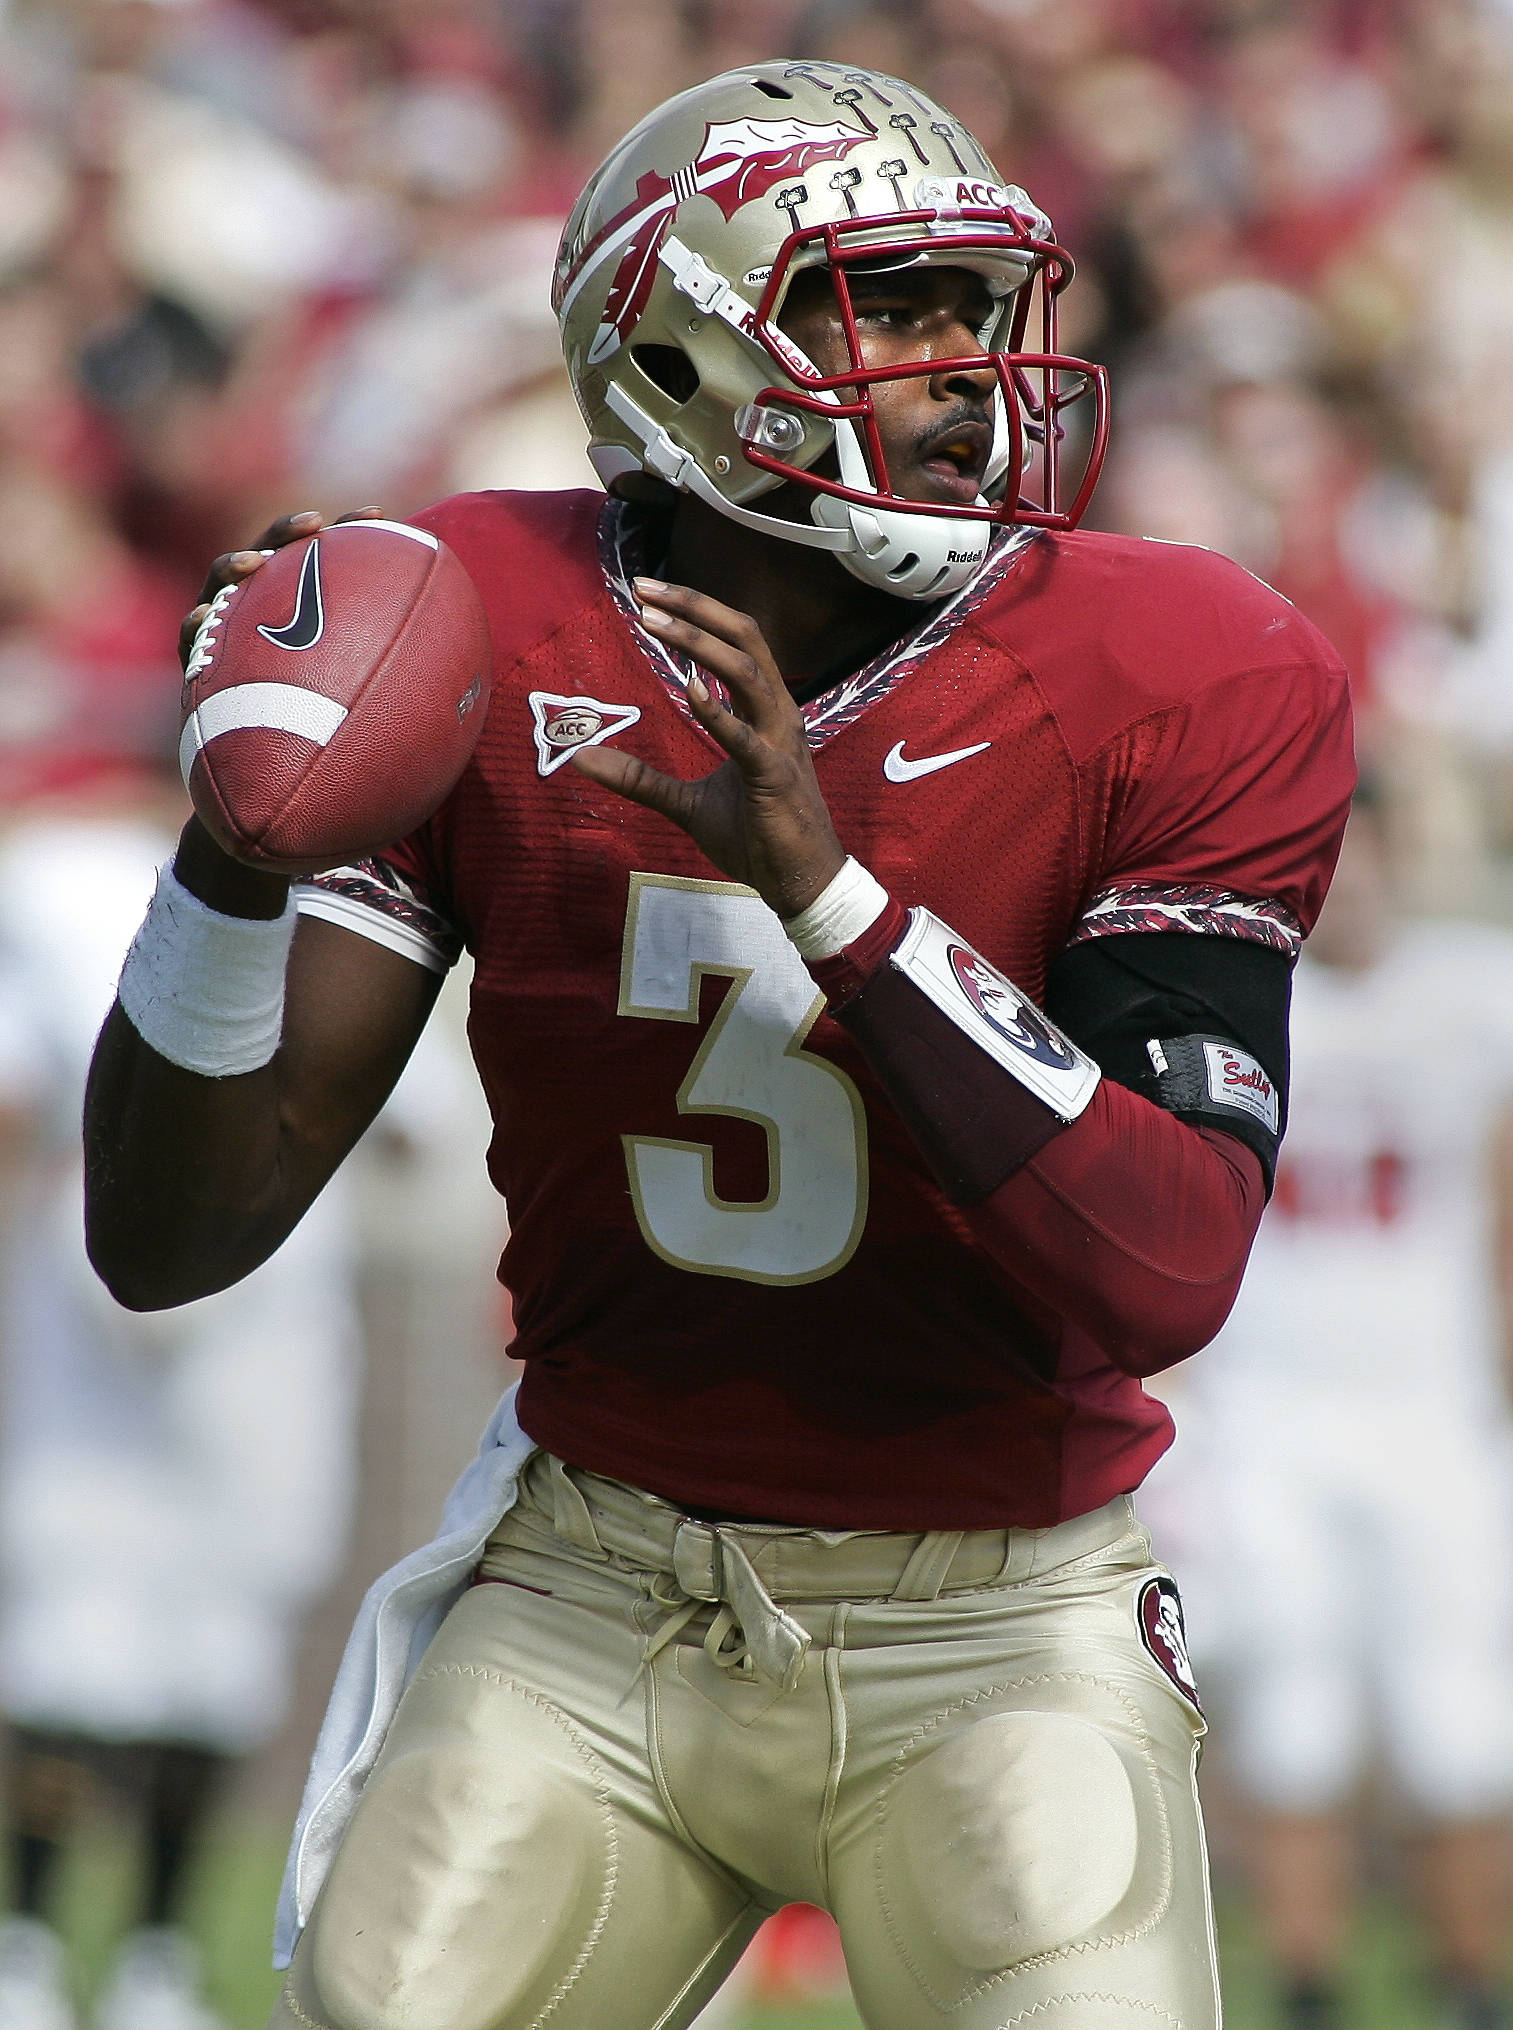 Florida State quarterback E.J. Manuel (3) throws in the first quarter of an NCAA college football game against North Carolina State at Doak Campbell Stadium in Tallahassee, Fla., Saturday, Oct. 29, 2011. FSU won 34-0. (AP Photo/Phil Sears)